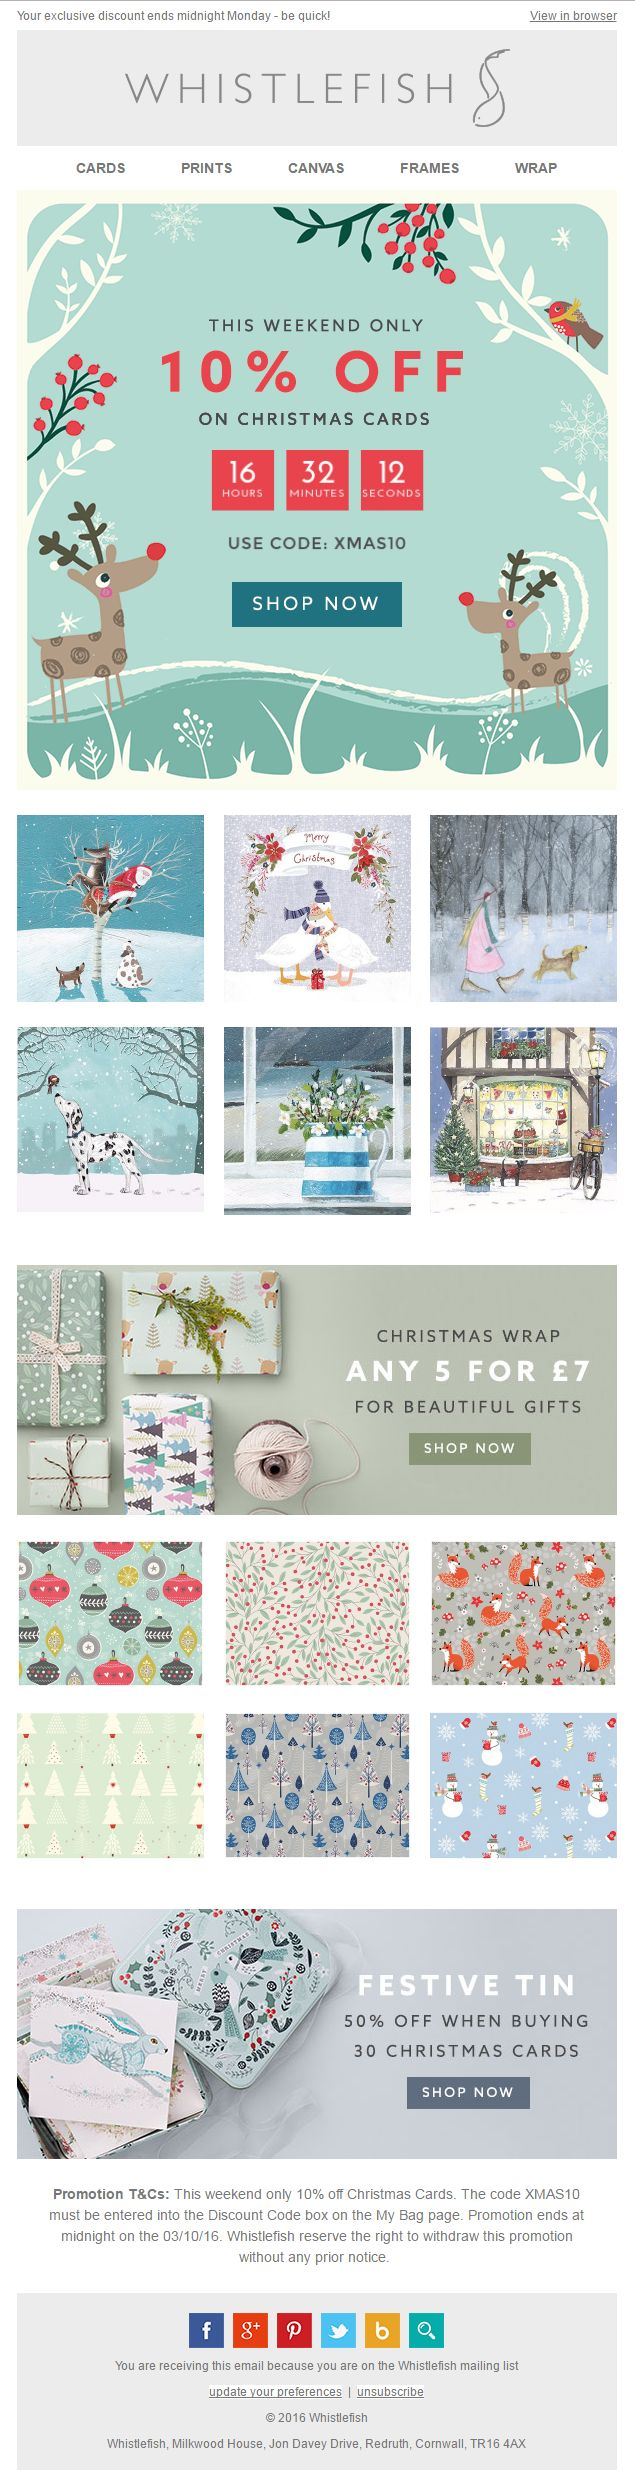 Countdown Timer from Whistlefish giving 10% off for one weekend on Christmas Cards #EmailMarketing #Email #Marketing #Christmas #CountdownTimer #Countdown #Timer #Gifts #Cards #Discount #Offer